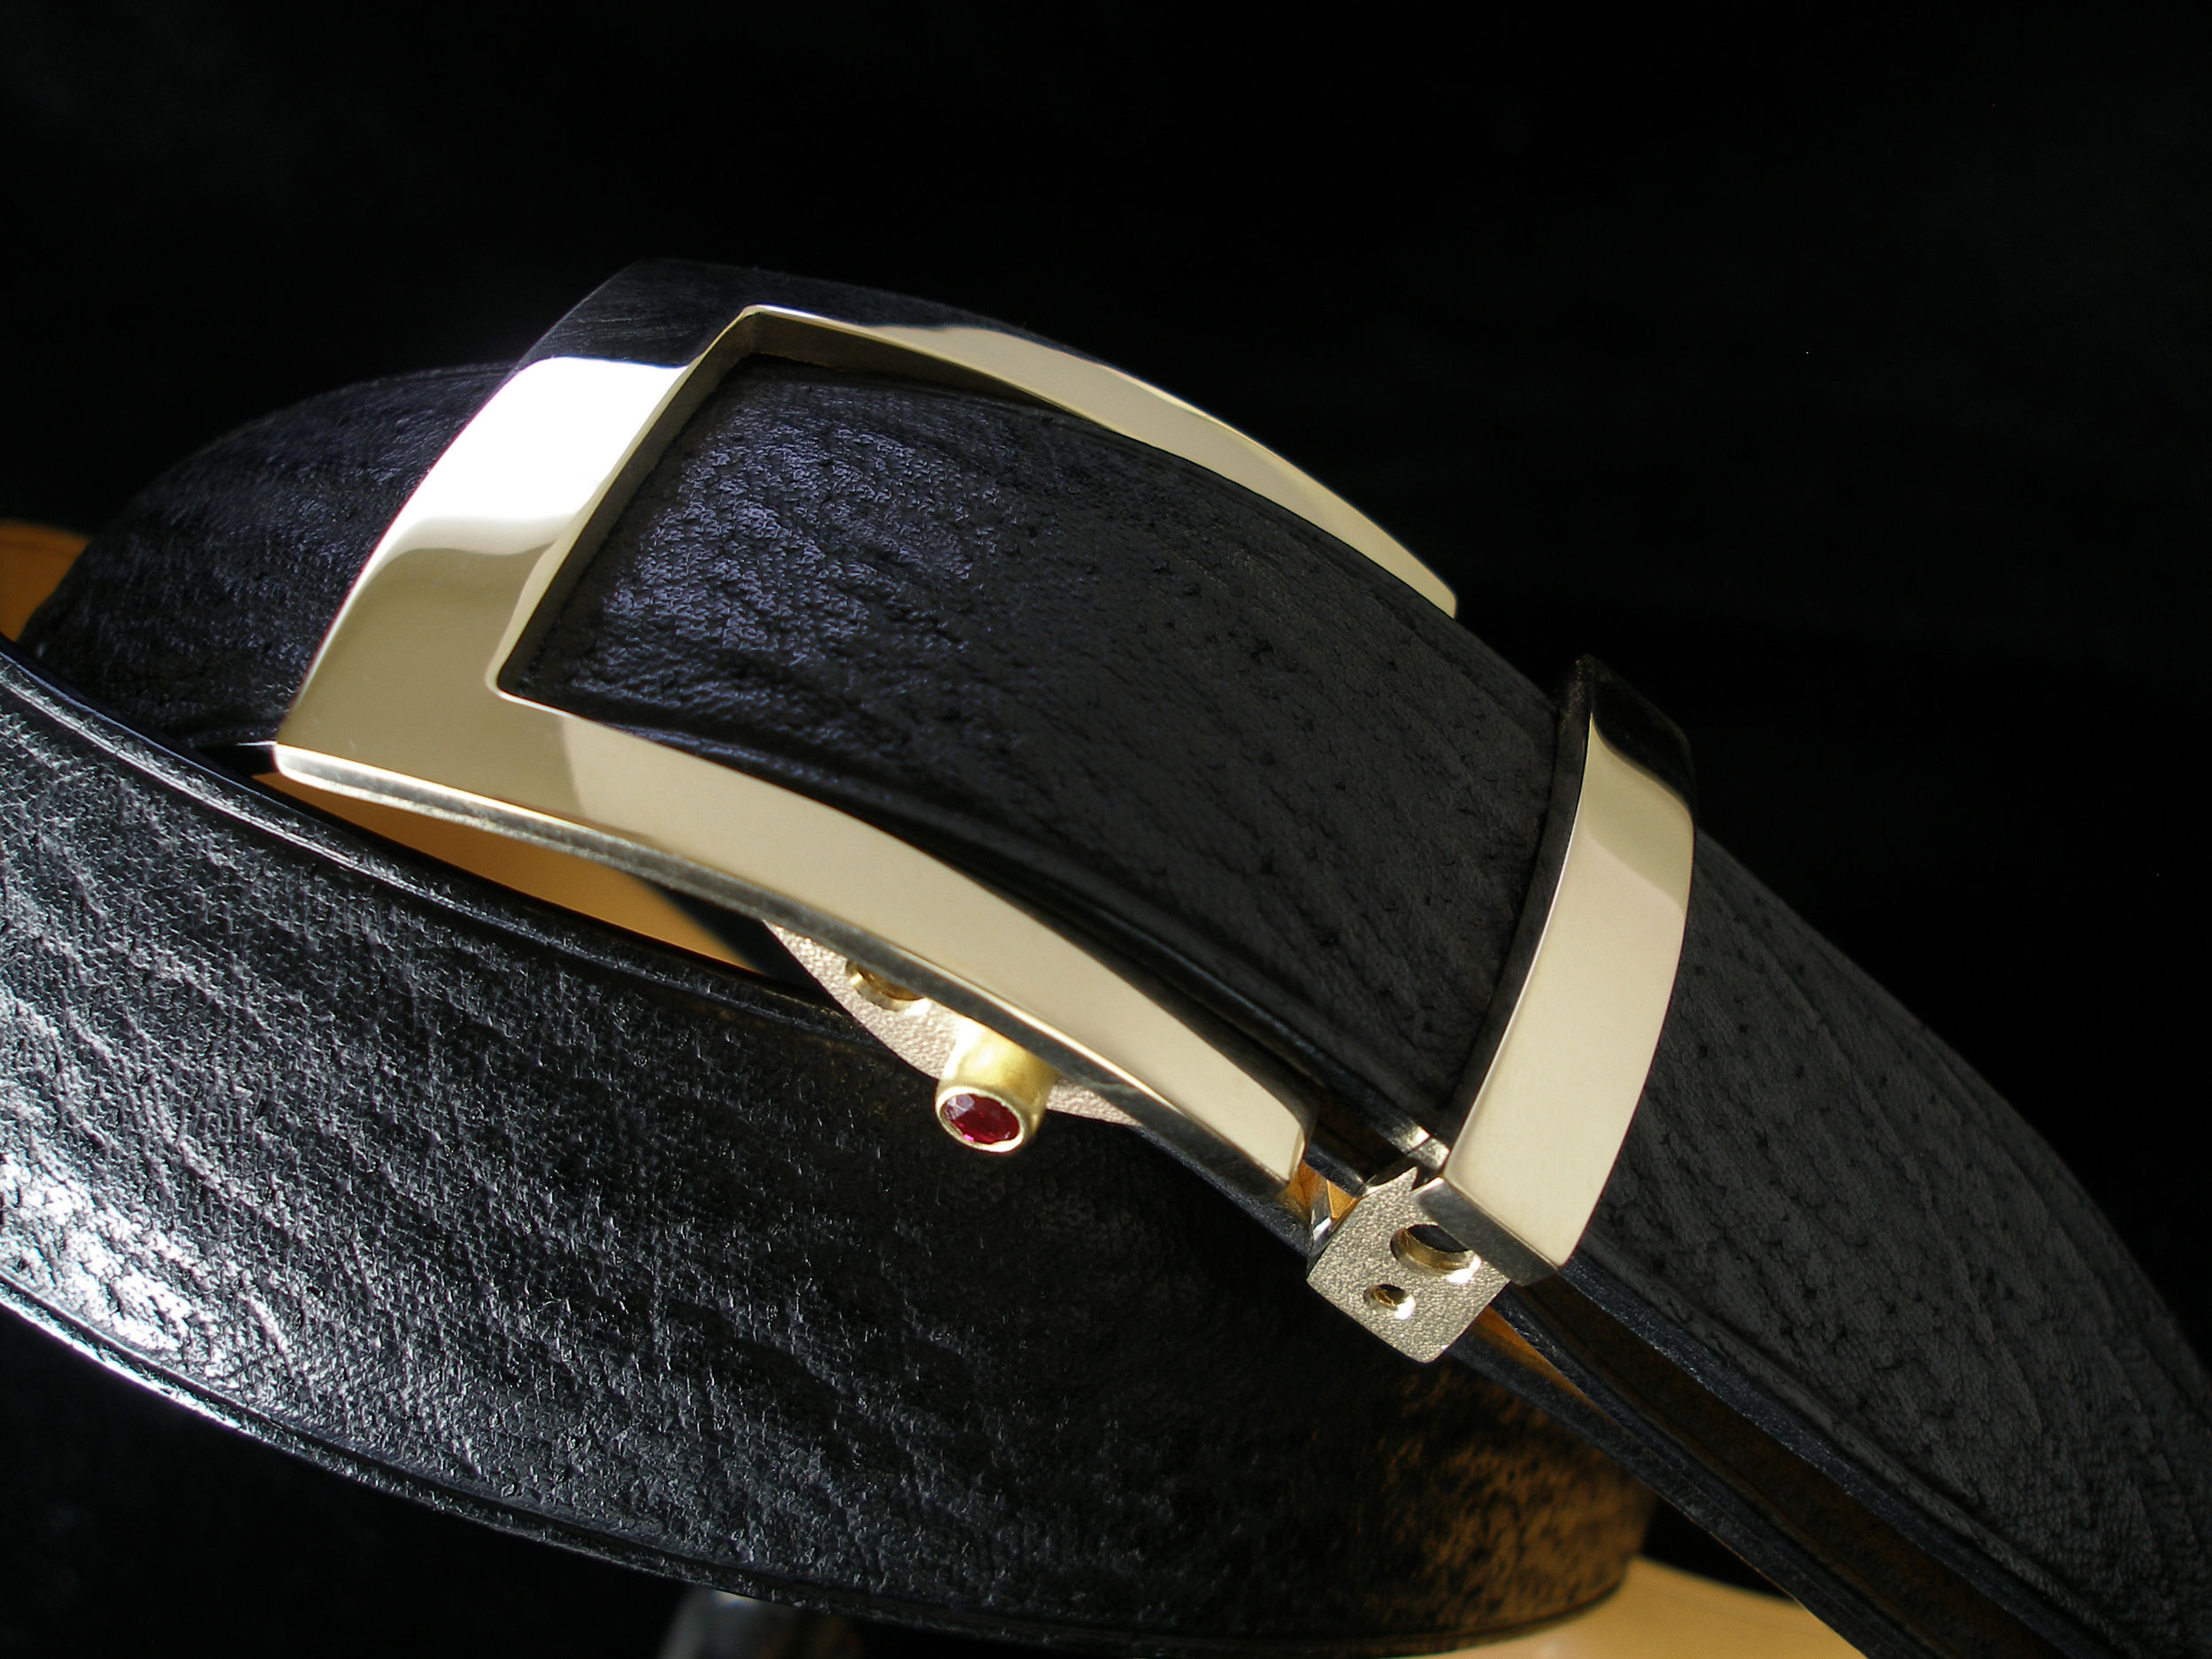 T-2 Belt Buckle in 14k gold w/ rubies